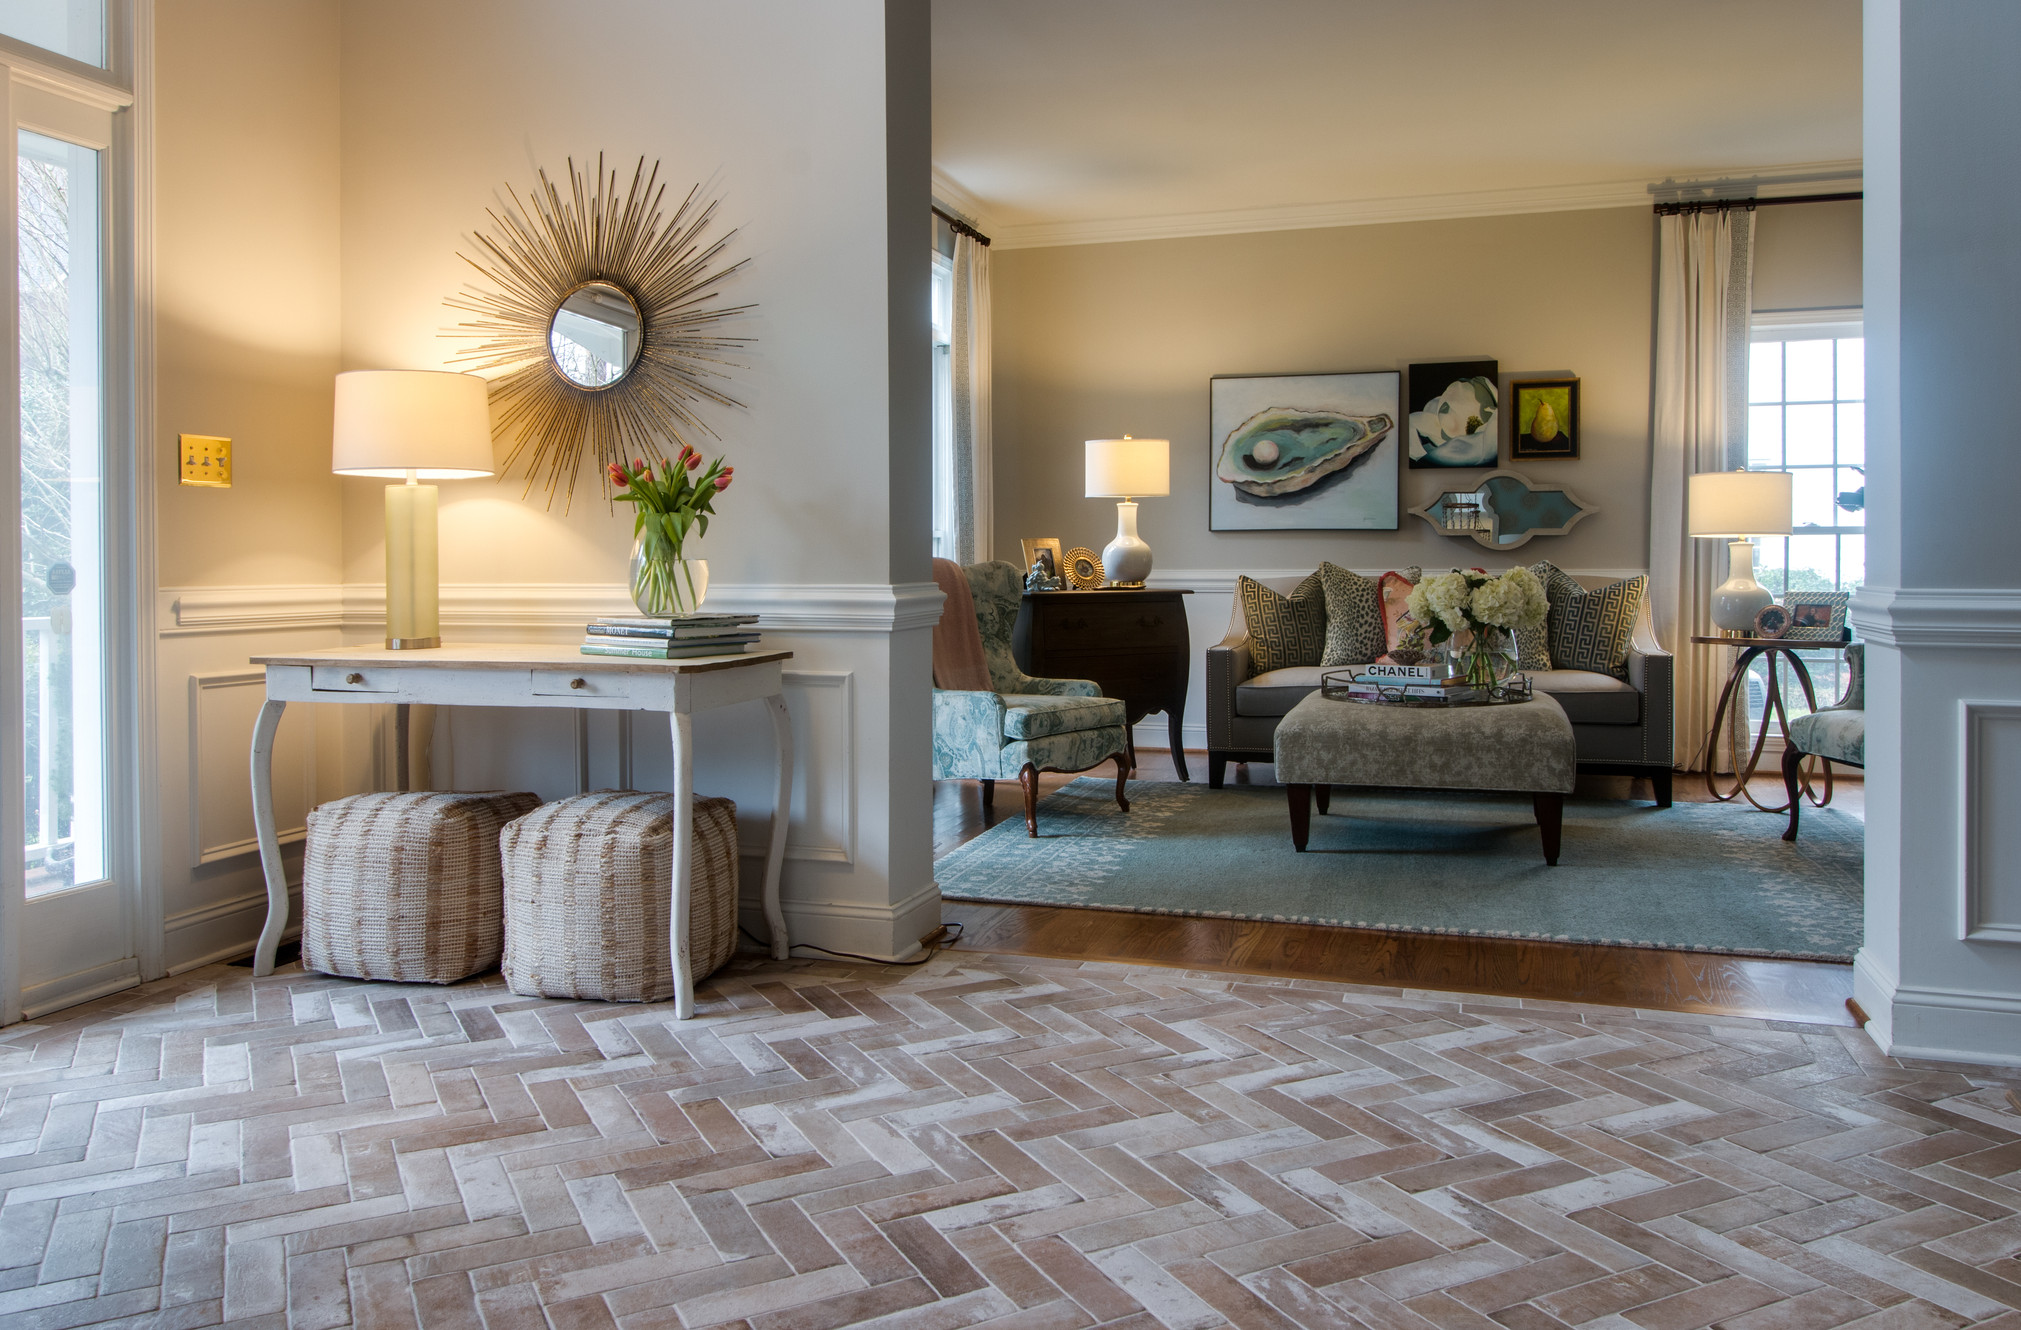 Fireplaces cottage lane interiors a charlotte nc - Interior design firms in charlotte nc ...